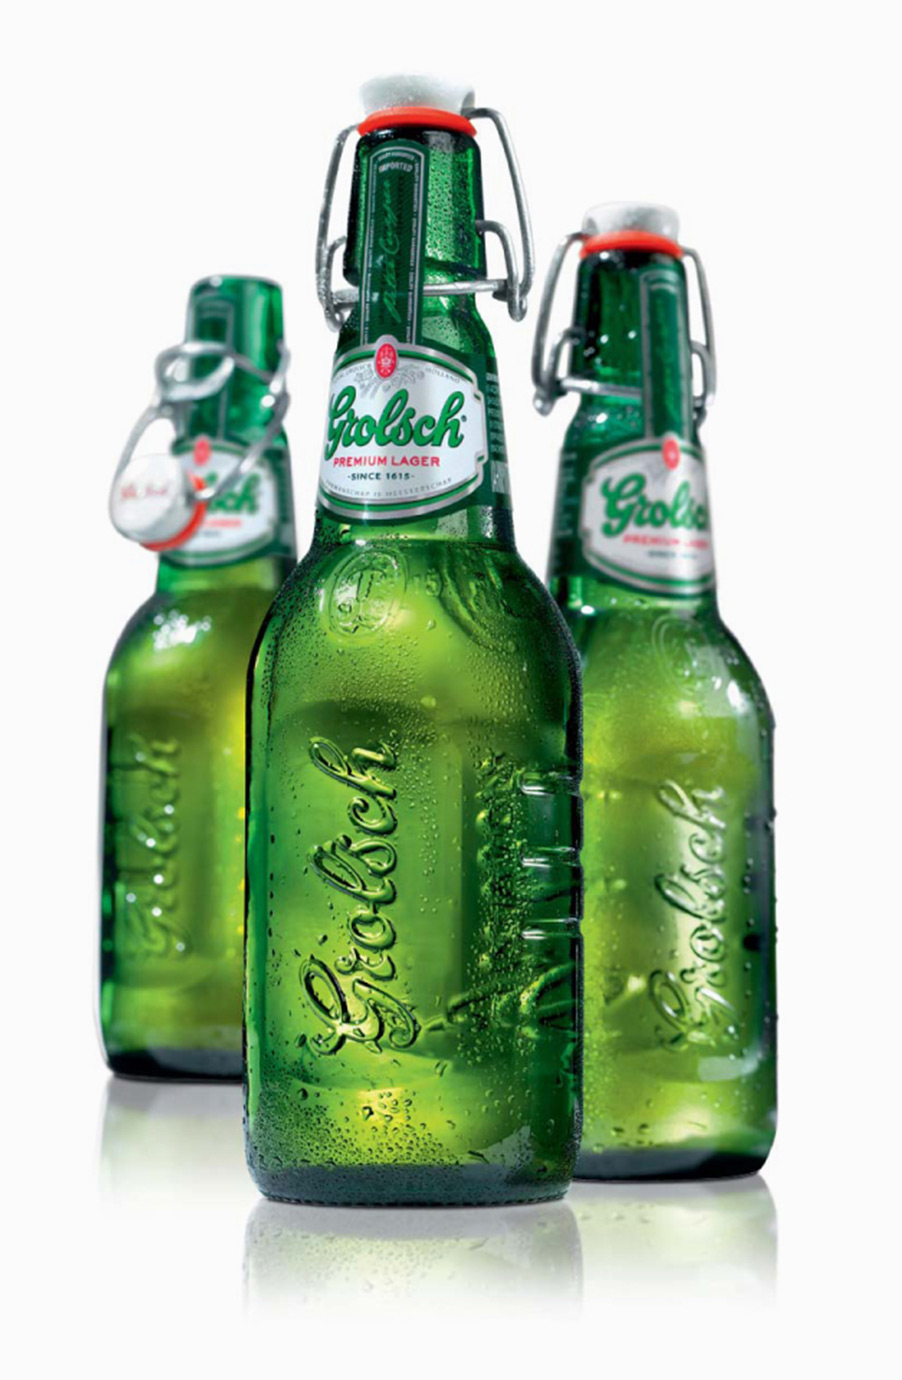 Grolsch Builds Engagement with Bluetooth Bottle Caps